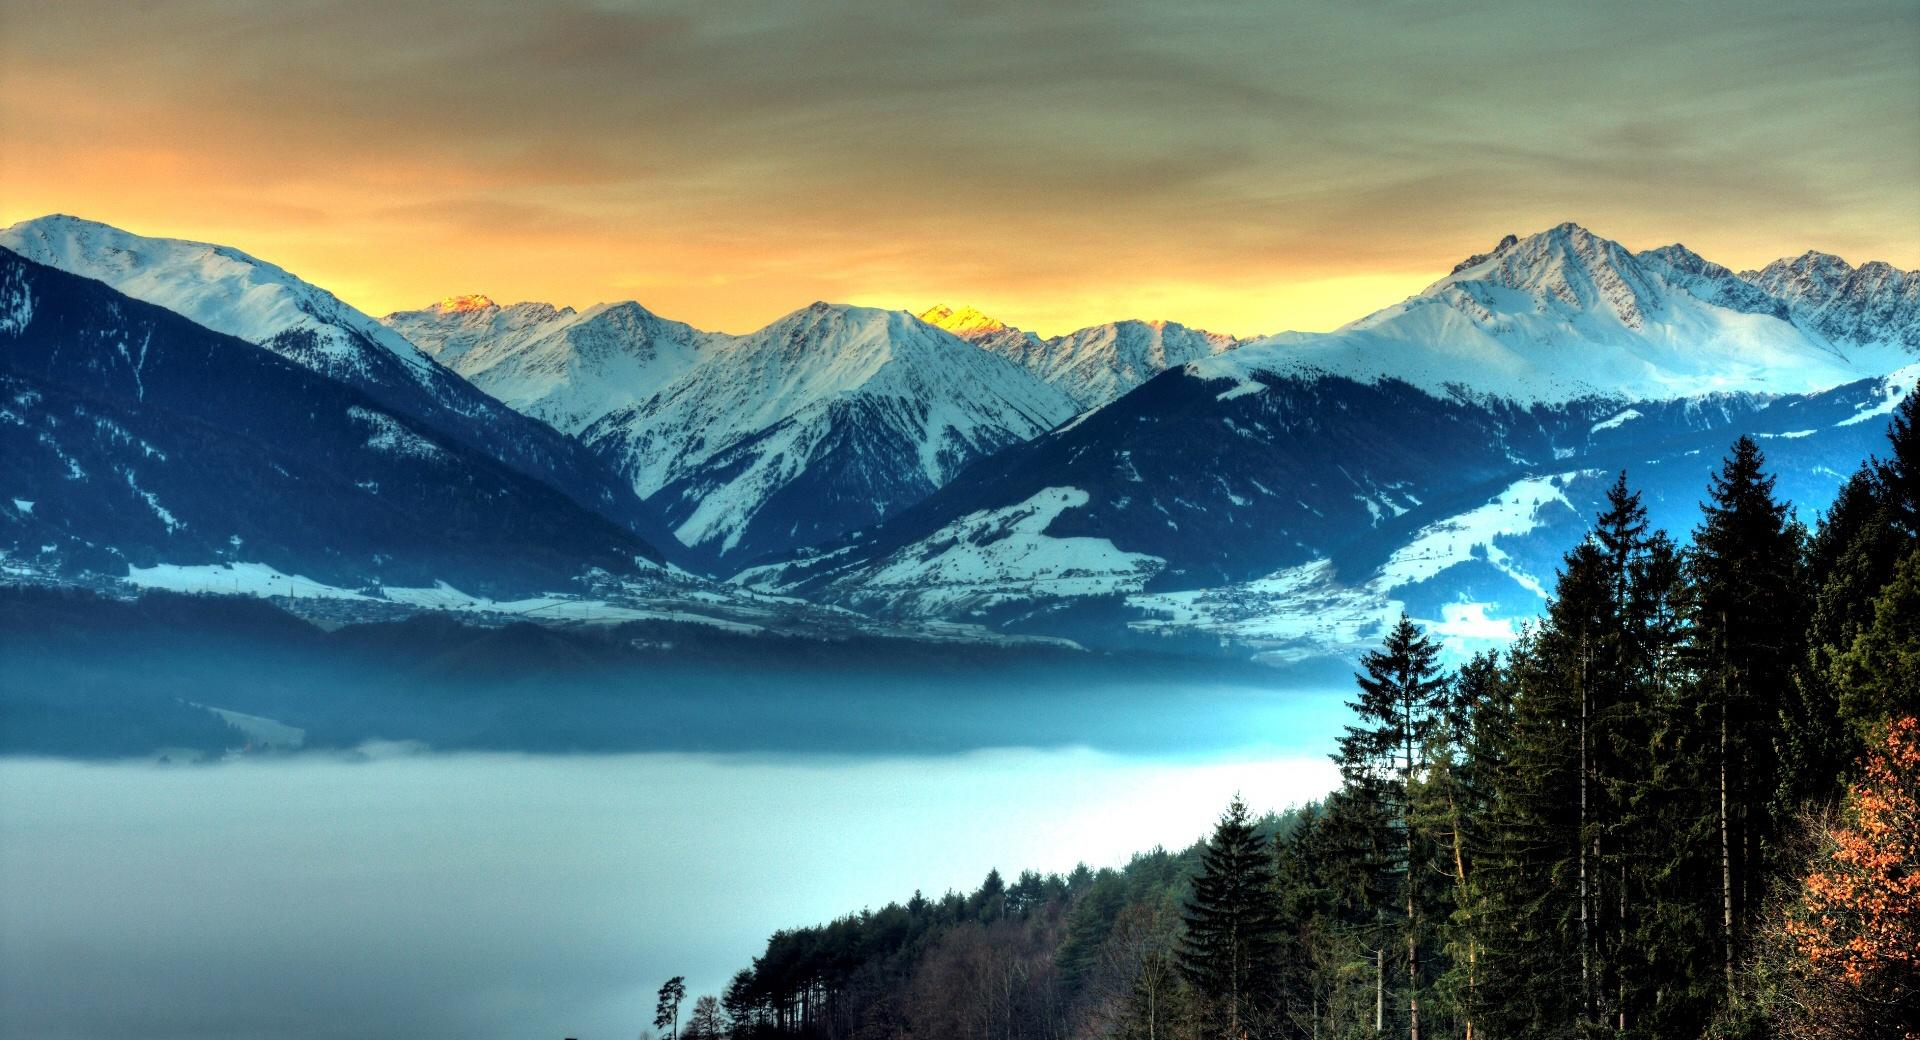 Snowy Mountains And Fog Filled Valley wallpapers HD quality